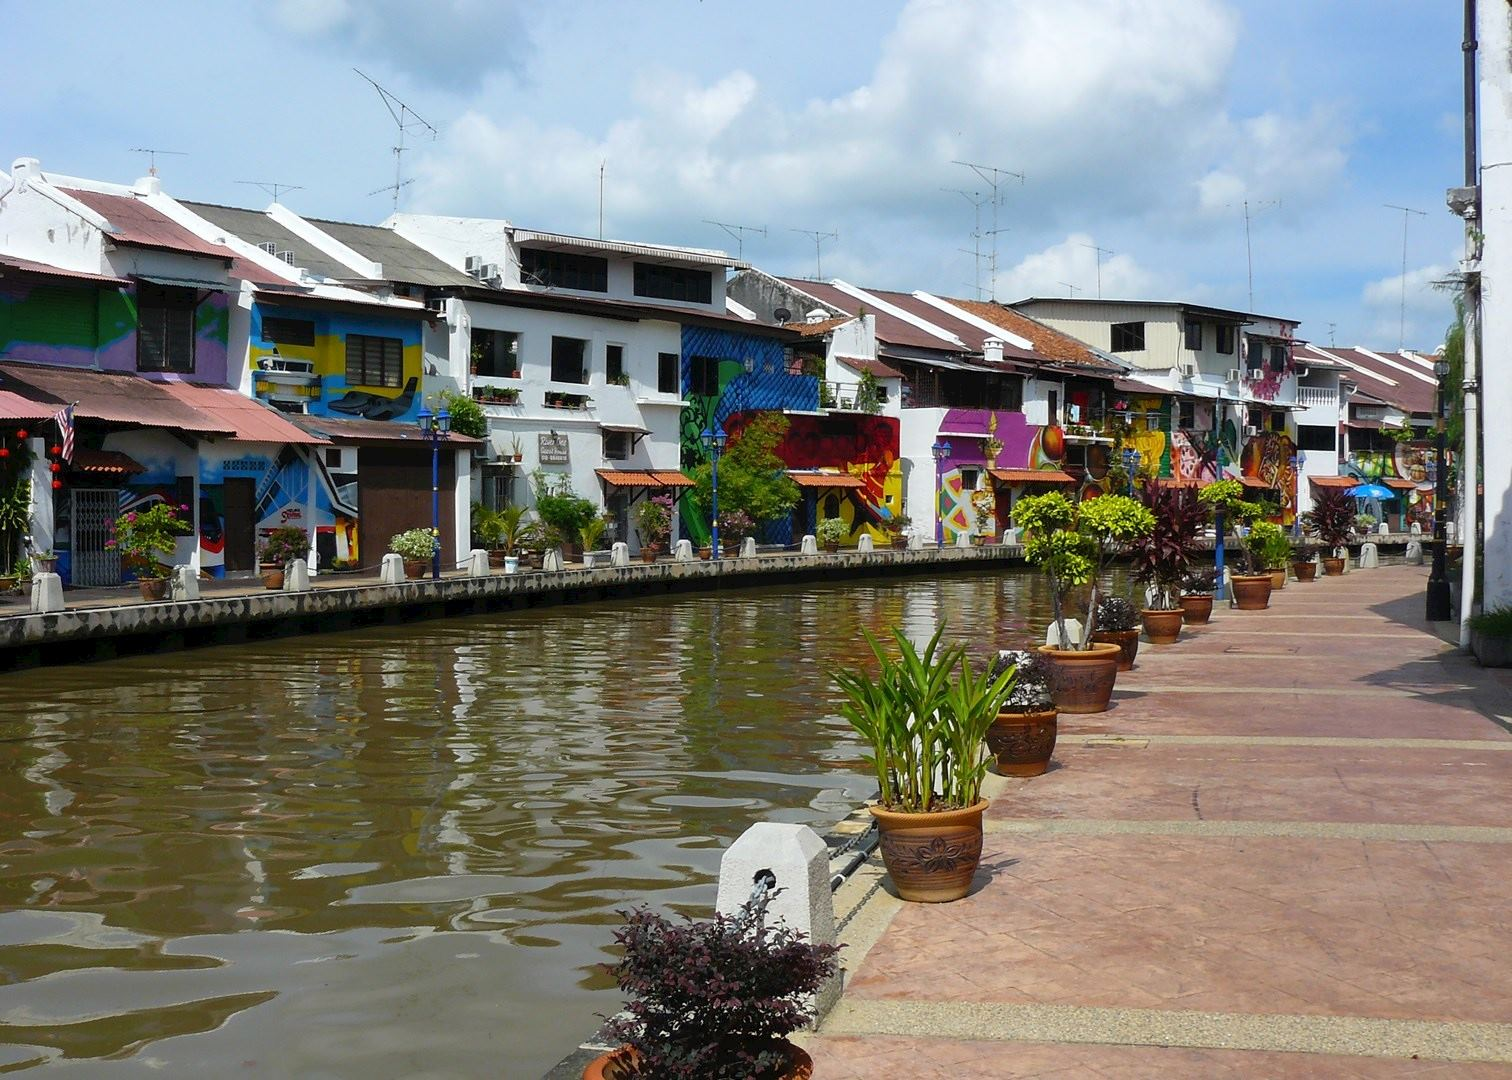 Essay about trip to malacca